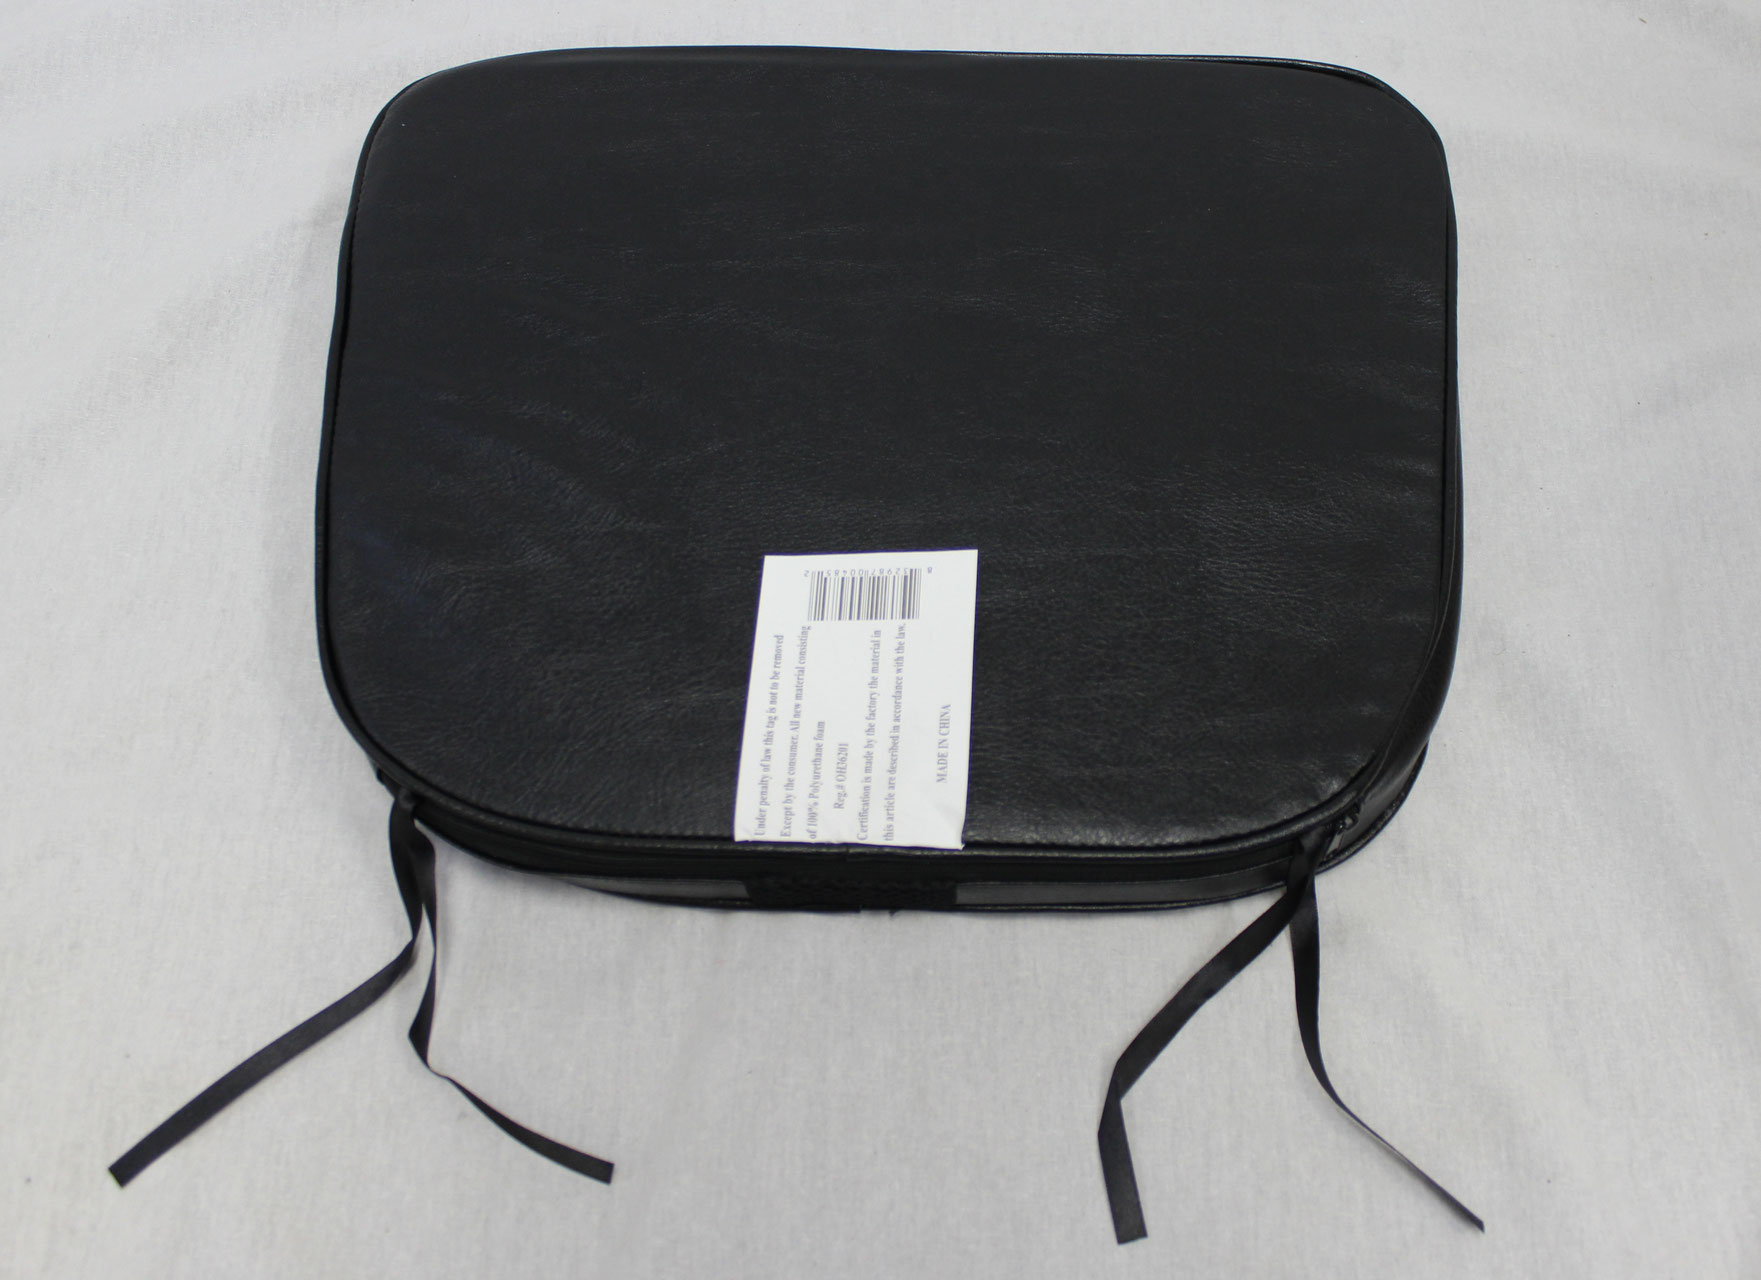 faux leather chair pads stackable office chairs with arms seat cushions 4 piece set ehemco